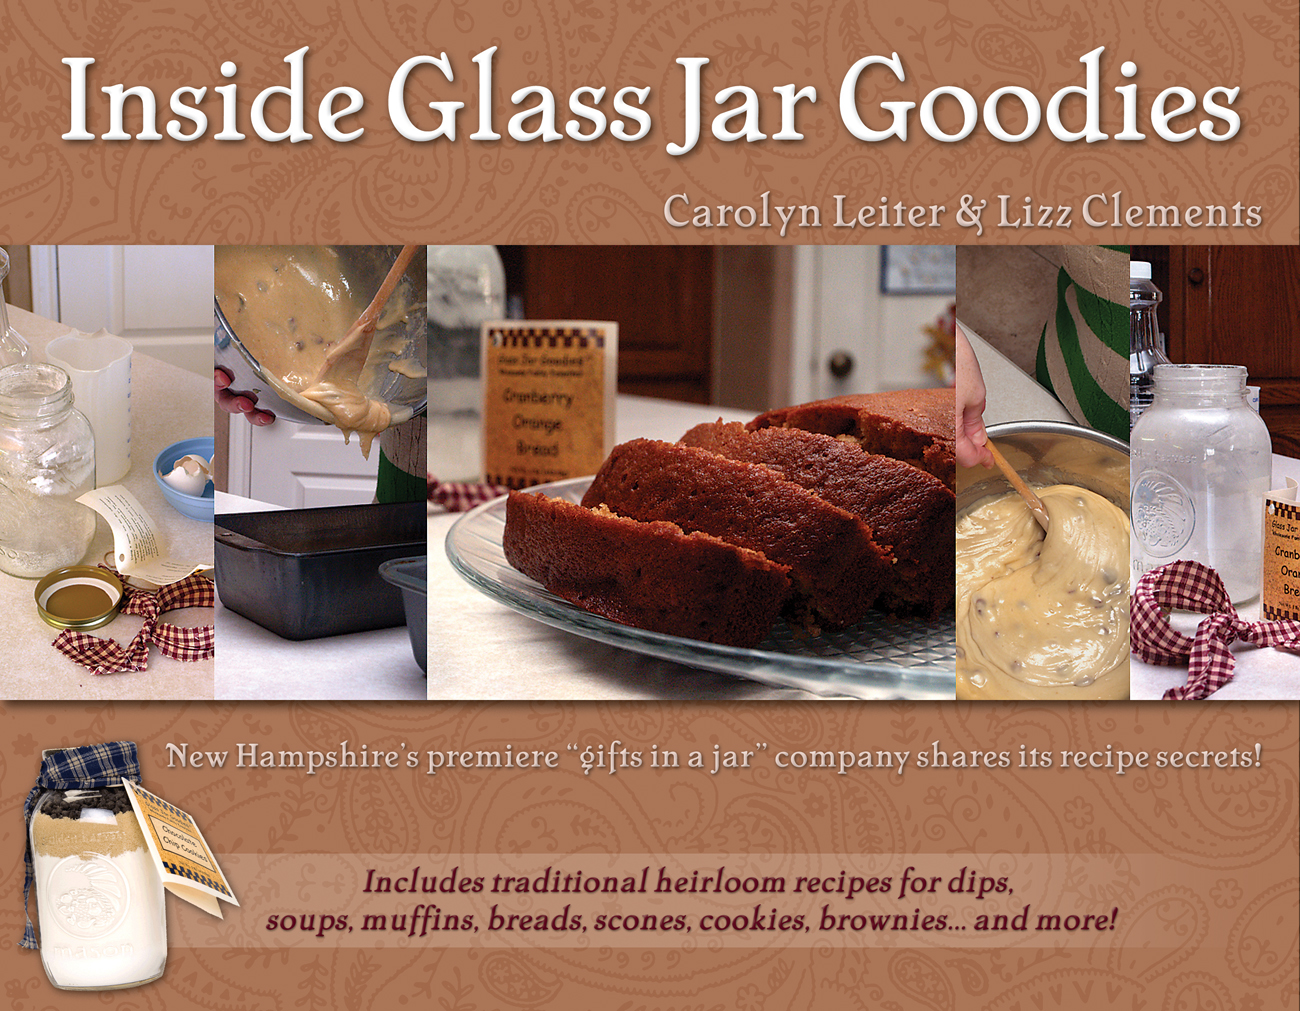 Inside Glass Jar Goodies